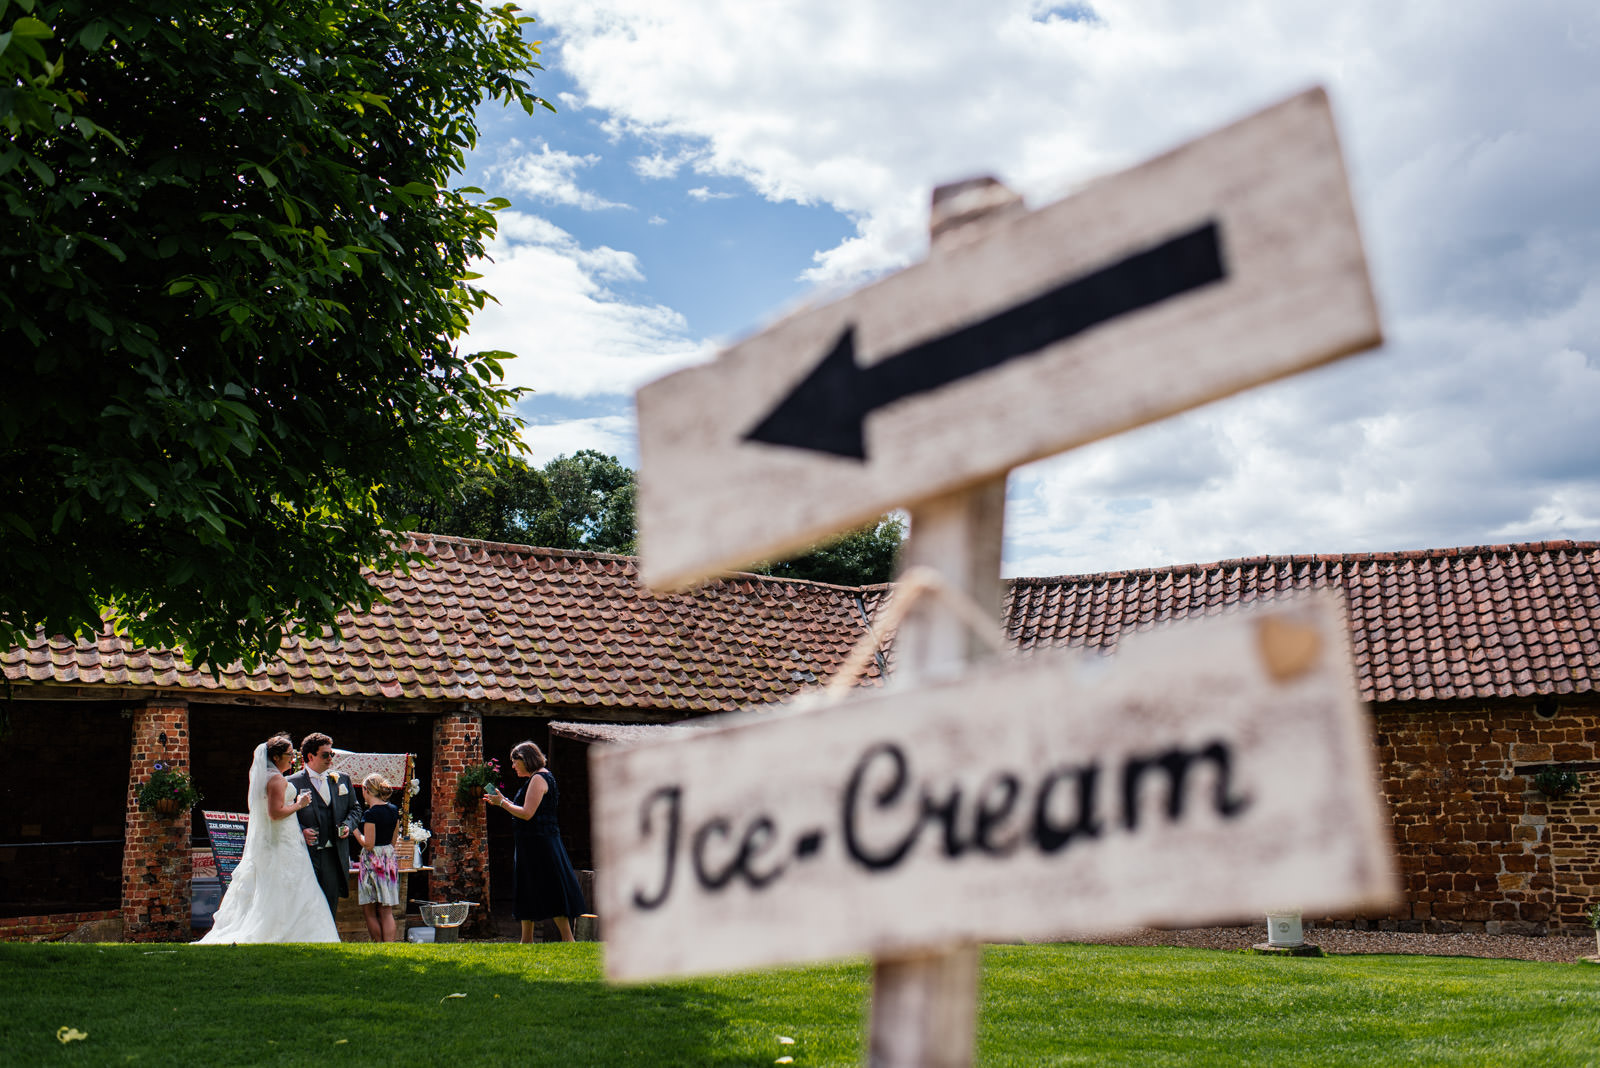 Bride and groom with ice cream sign